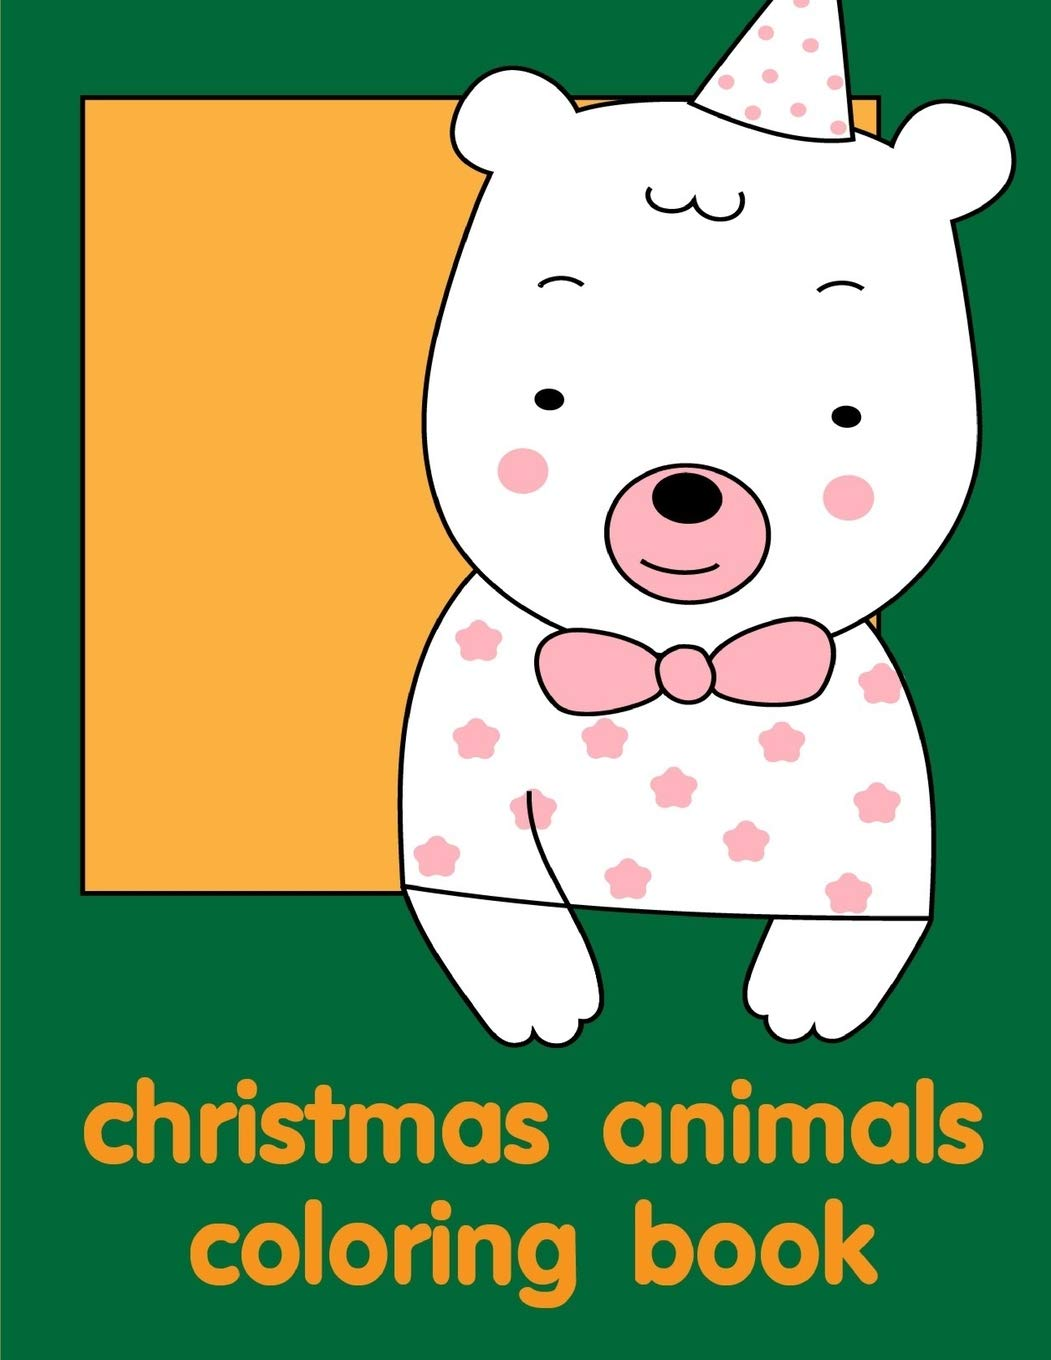 Buy Christmas Animals Coloring Book Adorable Animal Designs Funny Coloring Pages For Kids Children 13 Education Kids Book Online At Low Prices In India Christmas Animals Coloring Book Adorable Animal Designs